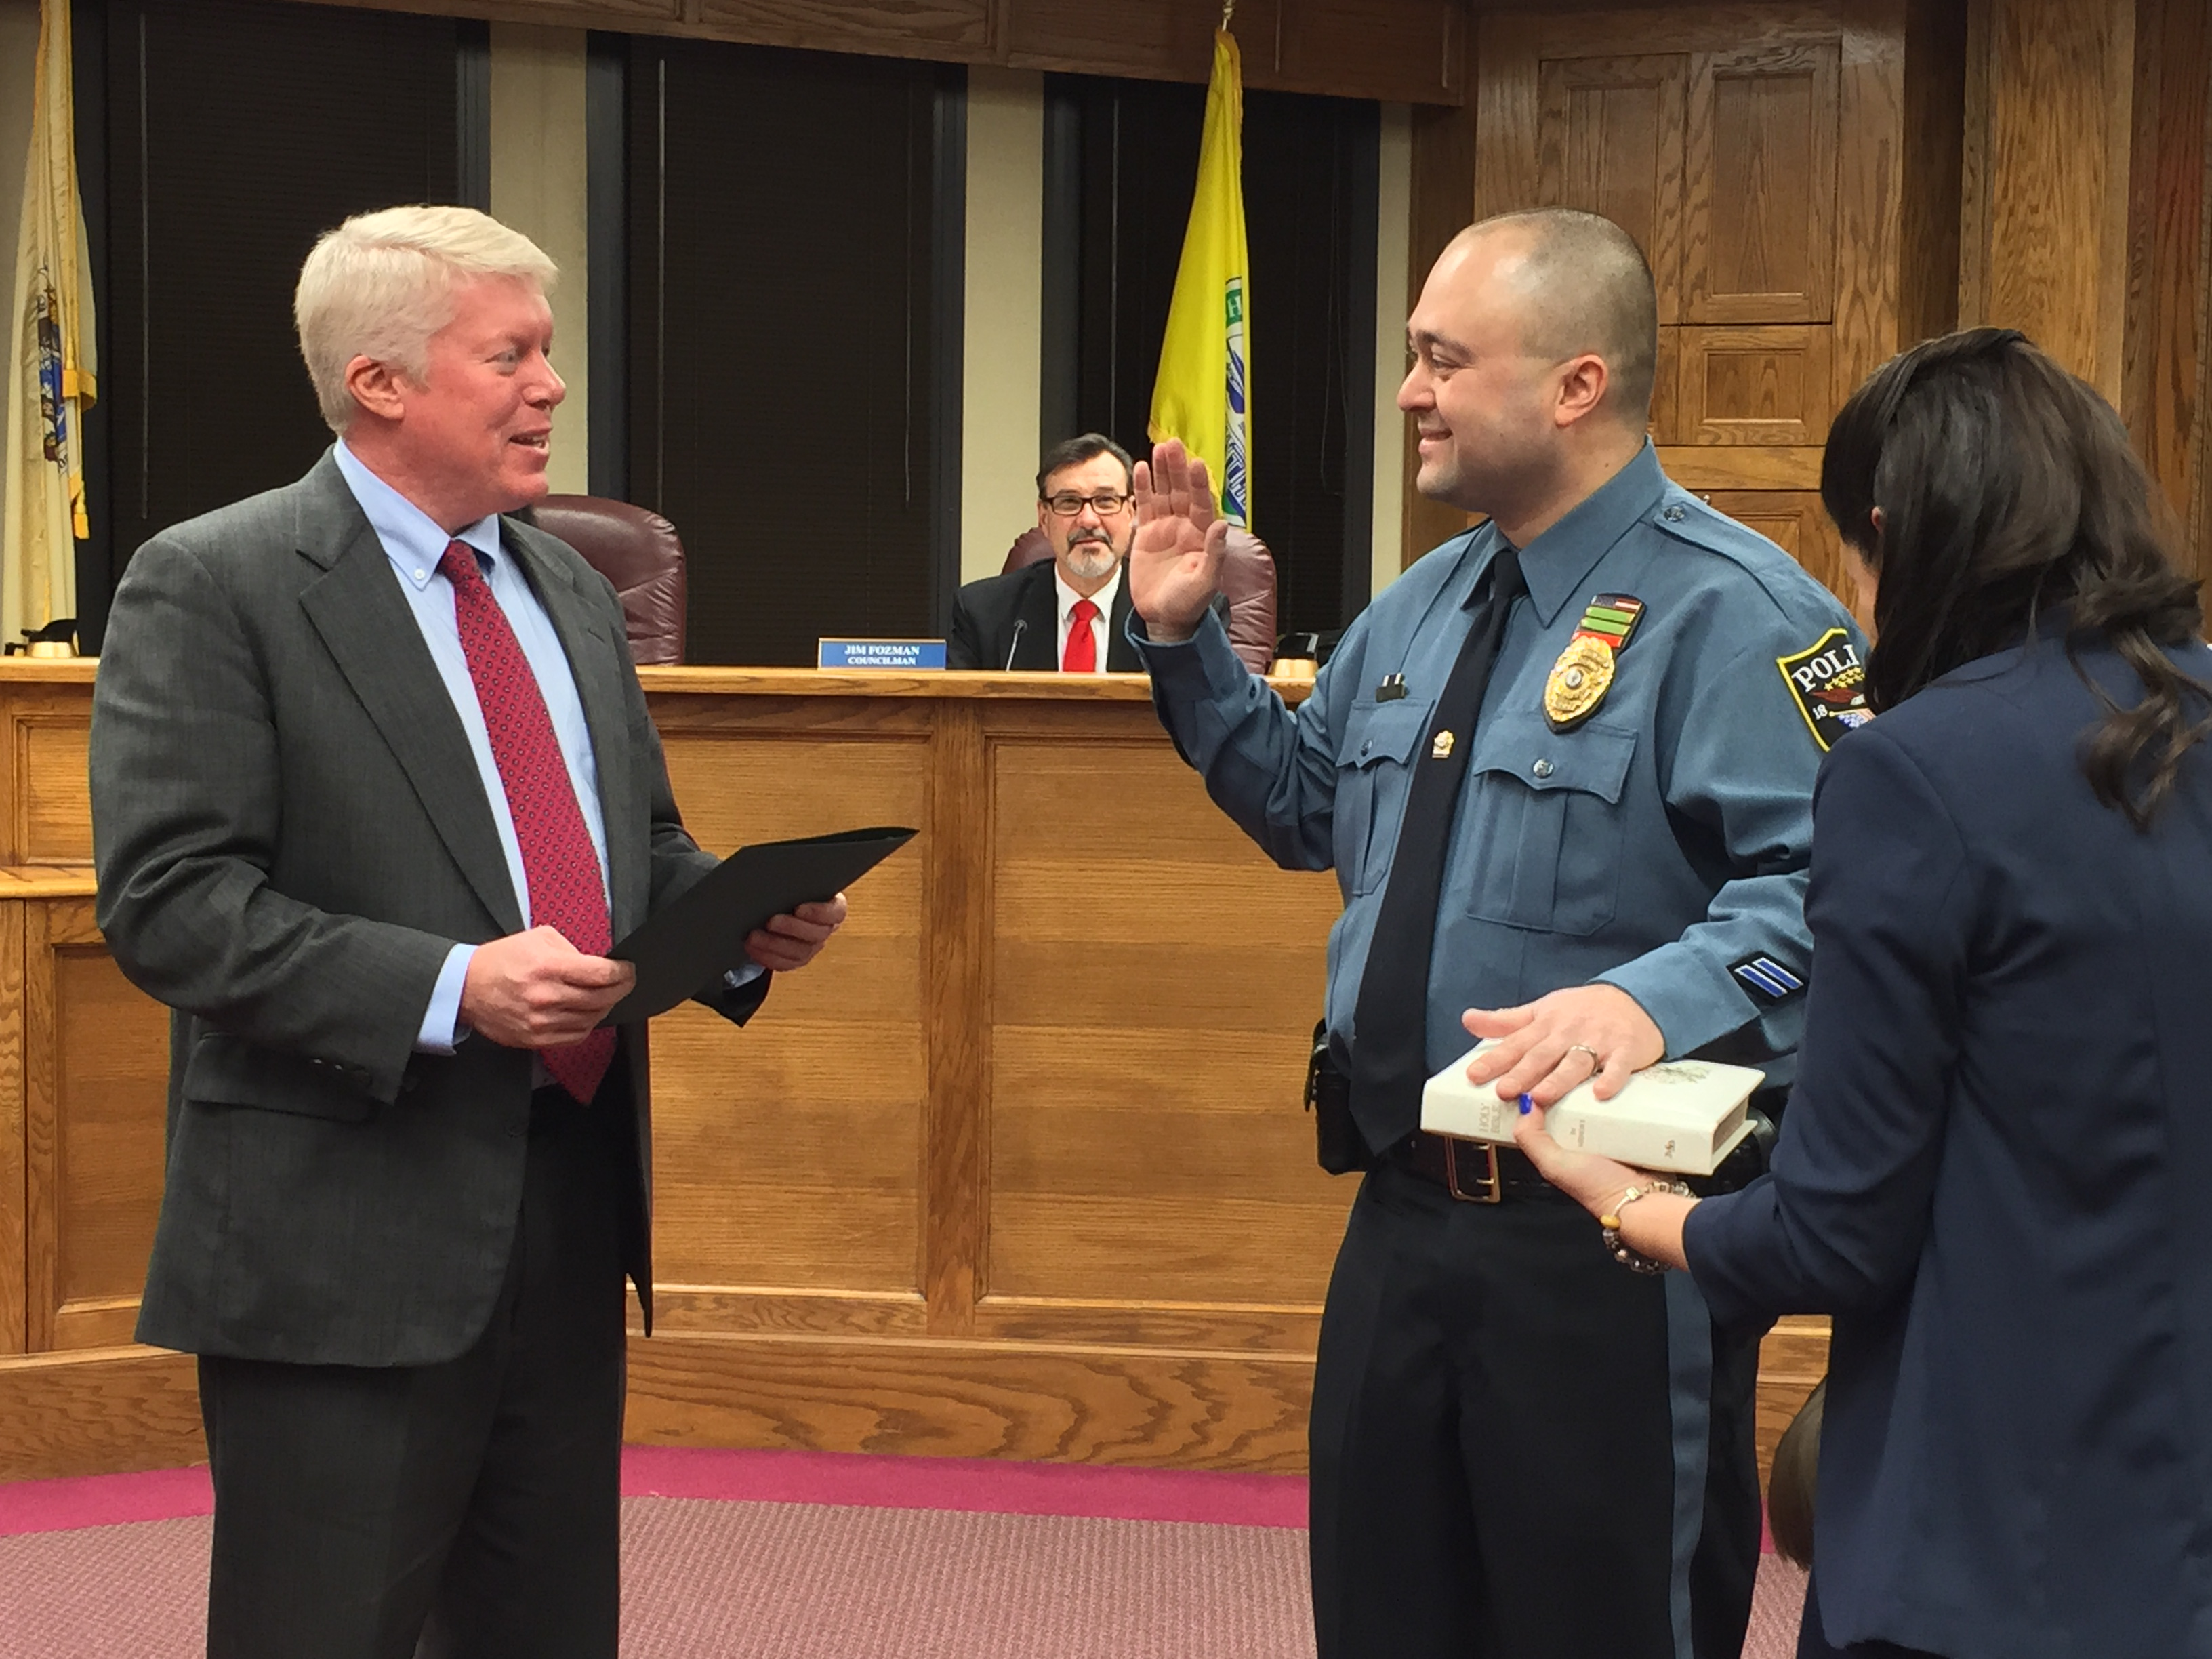 Brick Police Officer Joshua Jensen is sworn in as a sergeant, Feb. 4, 2015. (Photo: Daniel Nee)